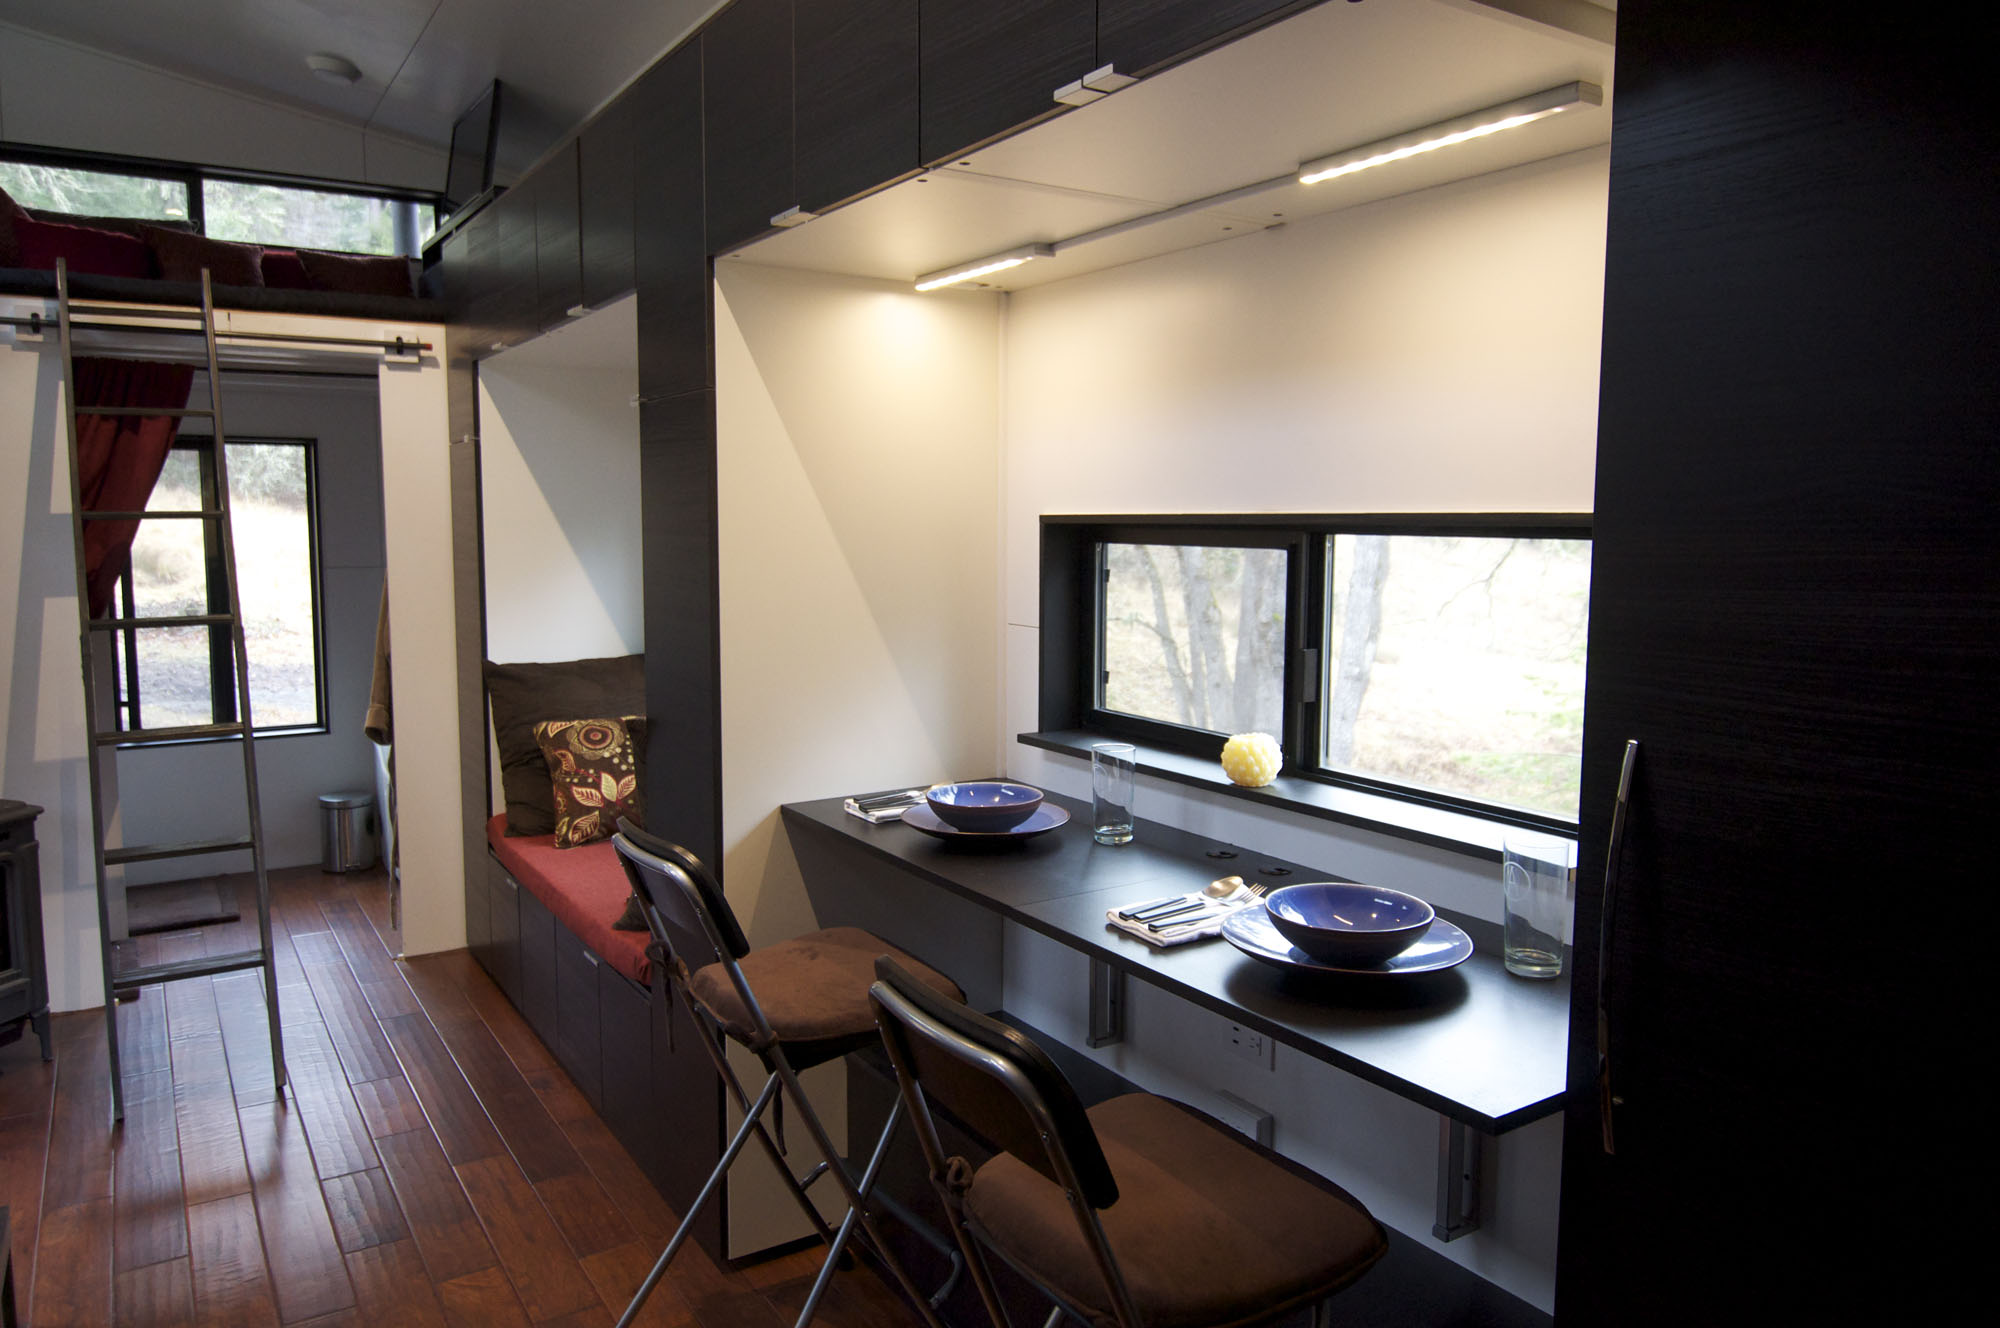 Furniture Ladder Malta Tiny House On Wheels: Home By Andrew And Gabriella Morrison